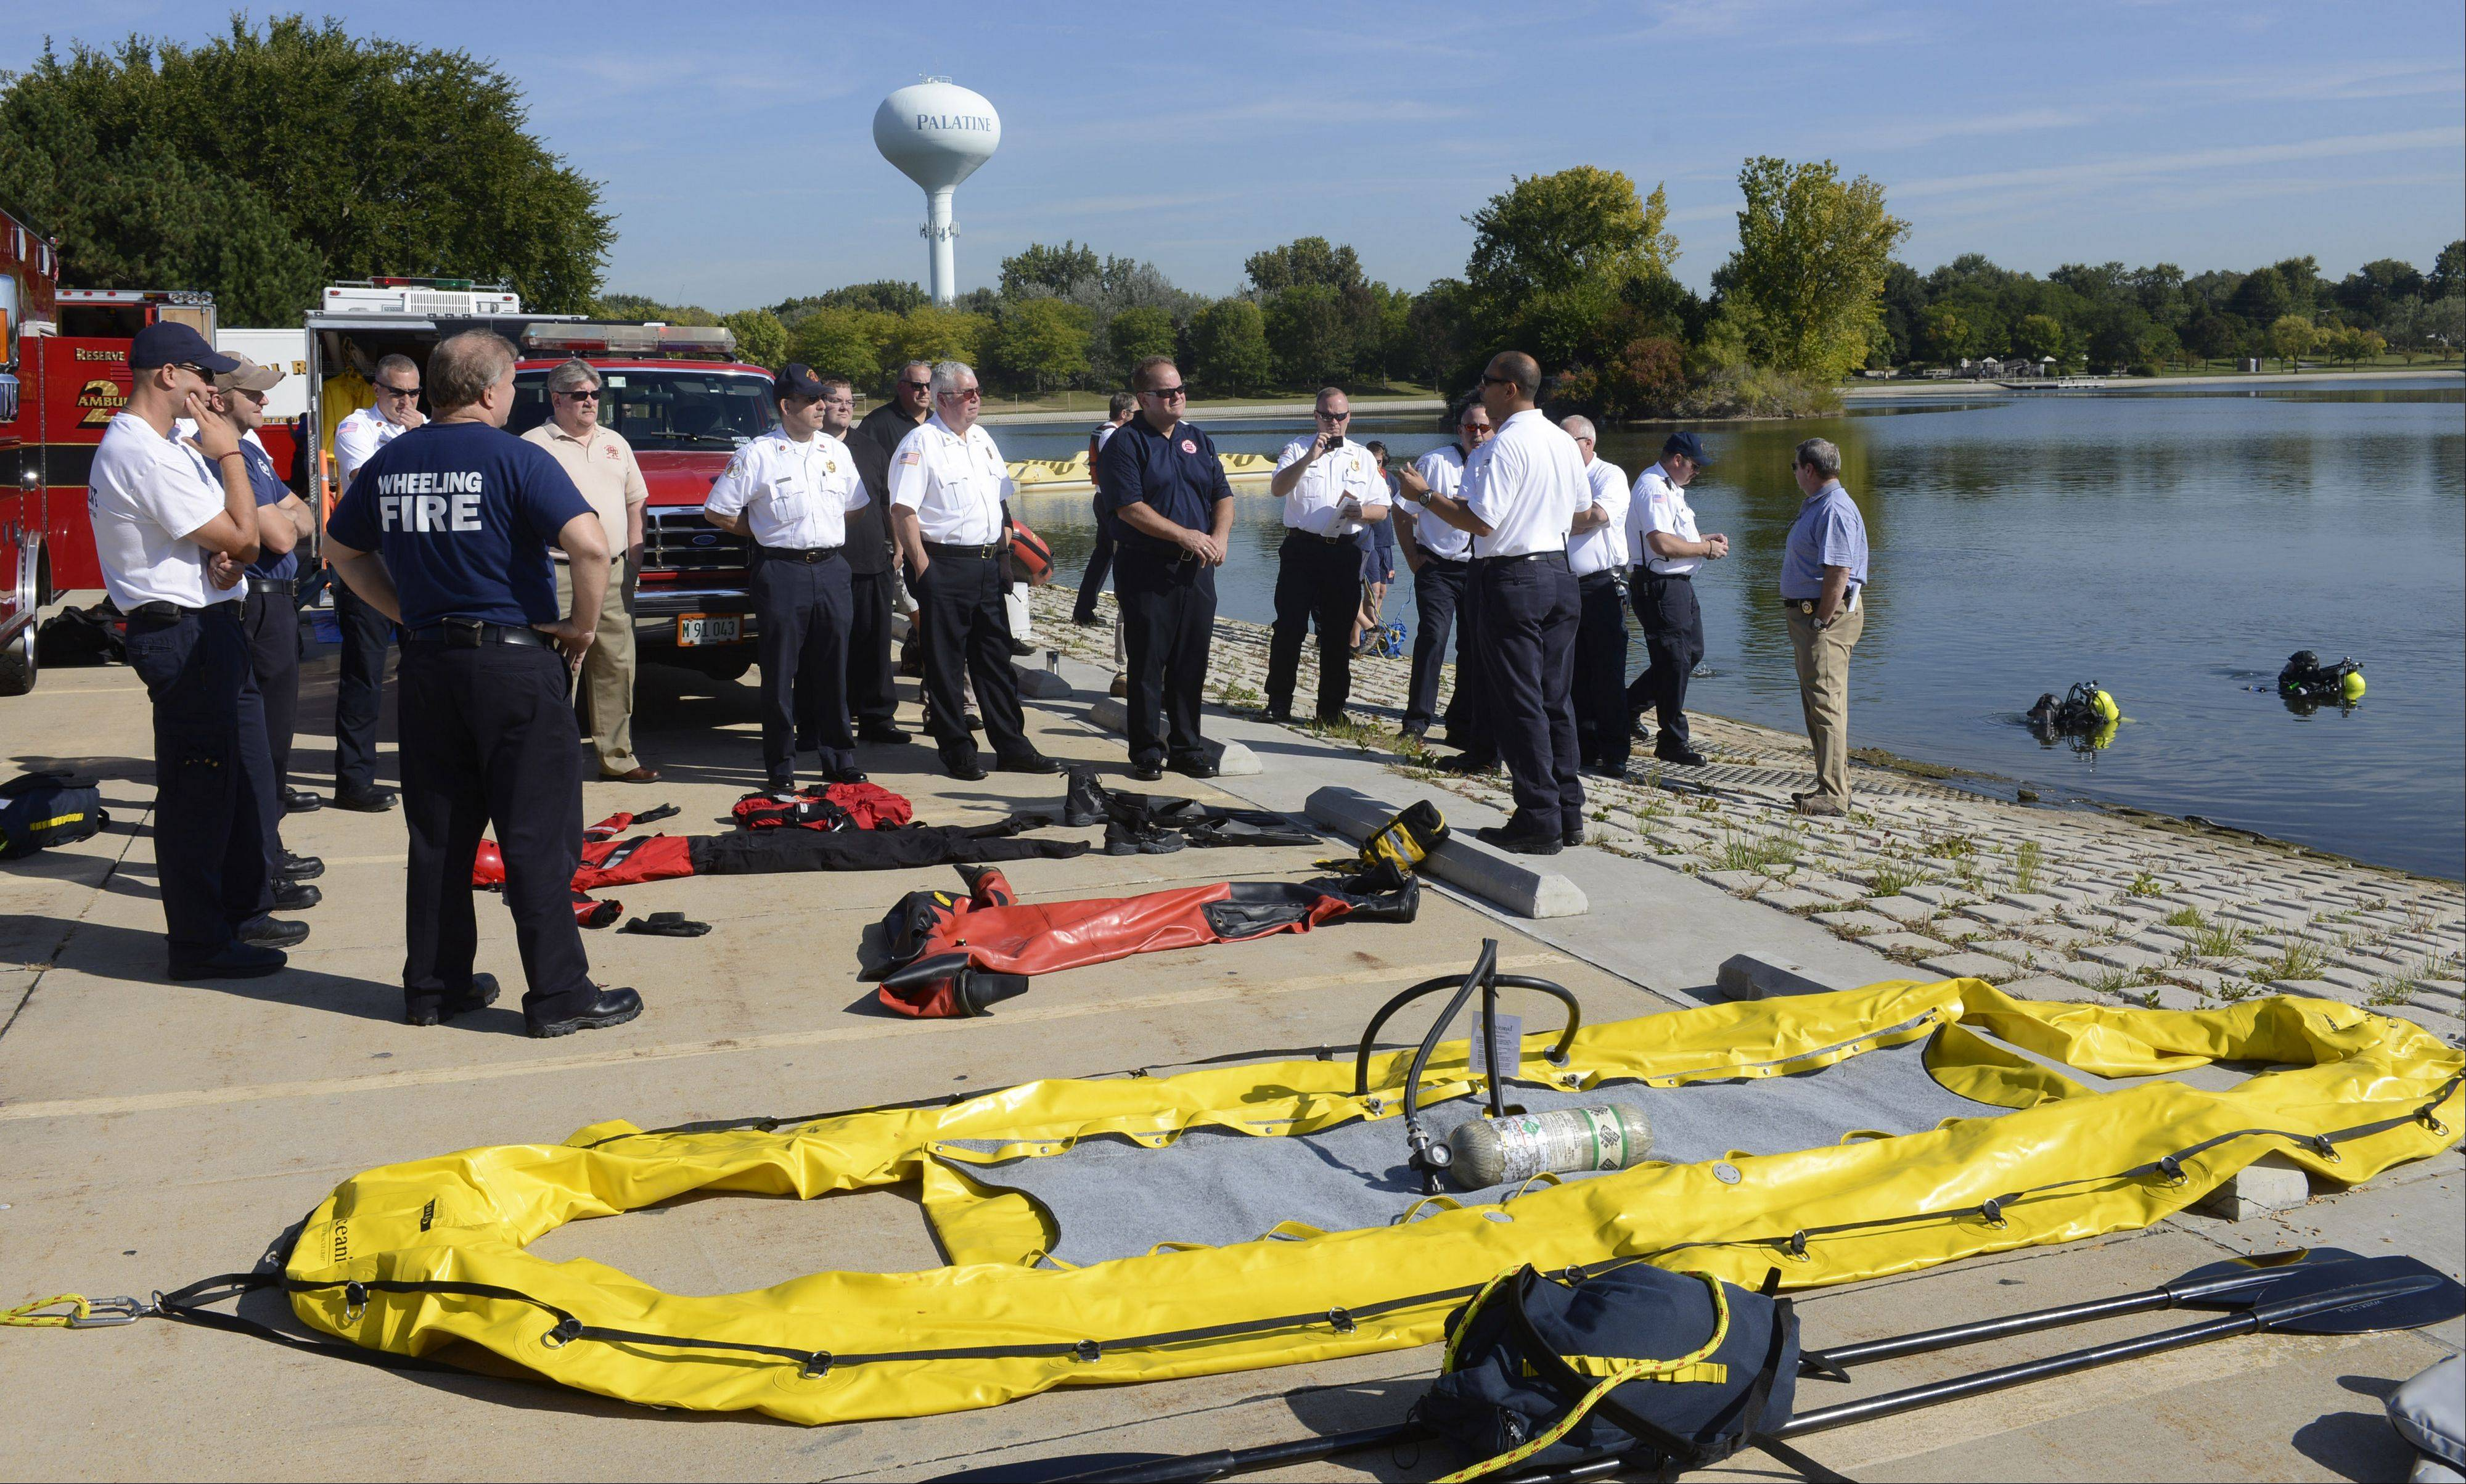 The regional water rescue team from the Mutual Aid Box Alarm System (MABAS) demonstrates water rescue techniques for the division's command officers Friday at Twin Lakes Recreation Area in Palatine.